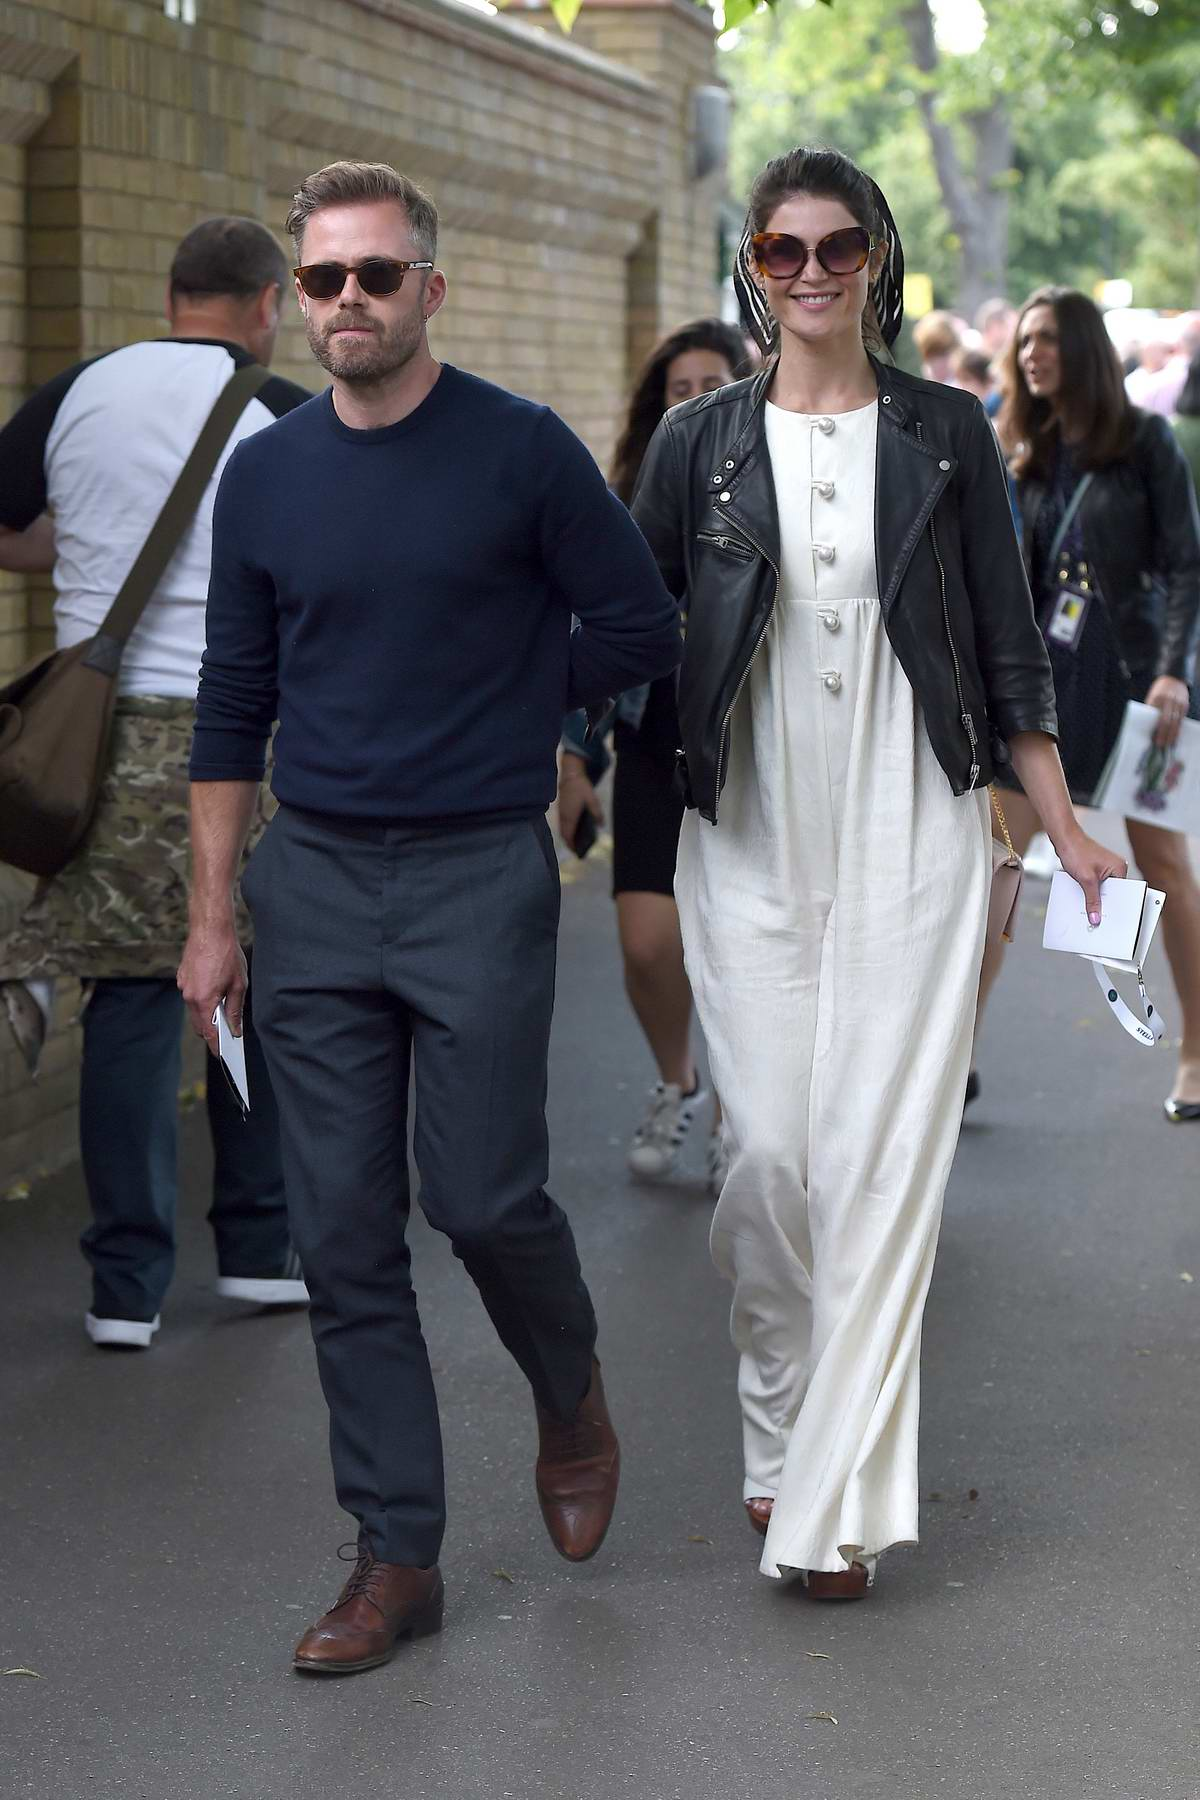 Gemma Arterton and Rory Keenan attend Men's Final Day at the Wimbledon 2019 Tennis Championships in London, UK